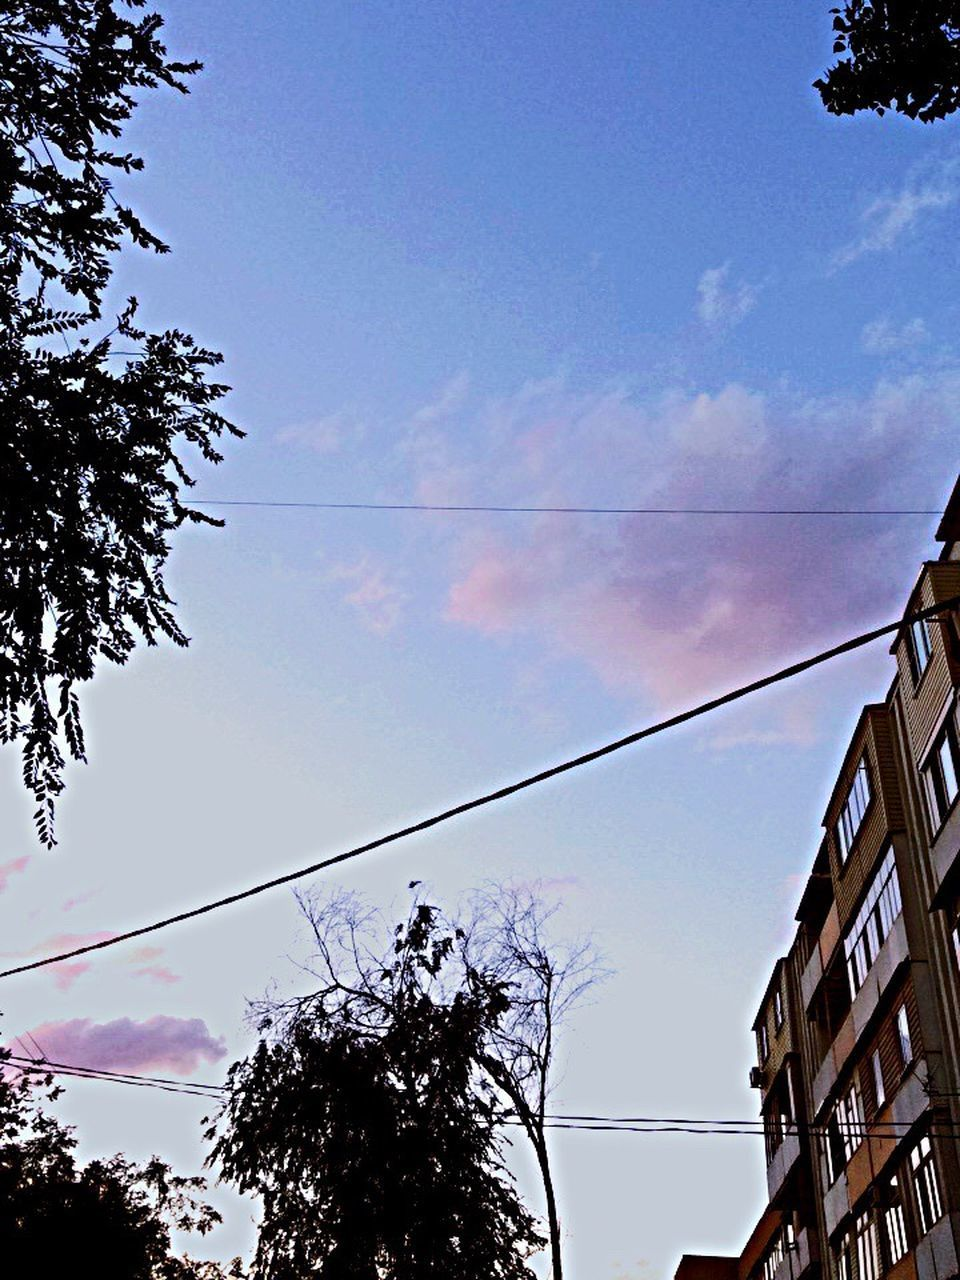 low angle view, tree, sky, cable, outdoors, power line, day, no people, cloud - sky, telephone line, nature, electricity pylon, technology